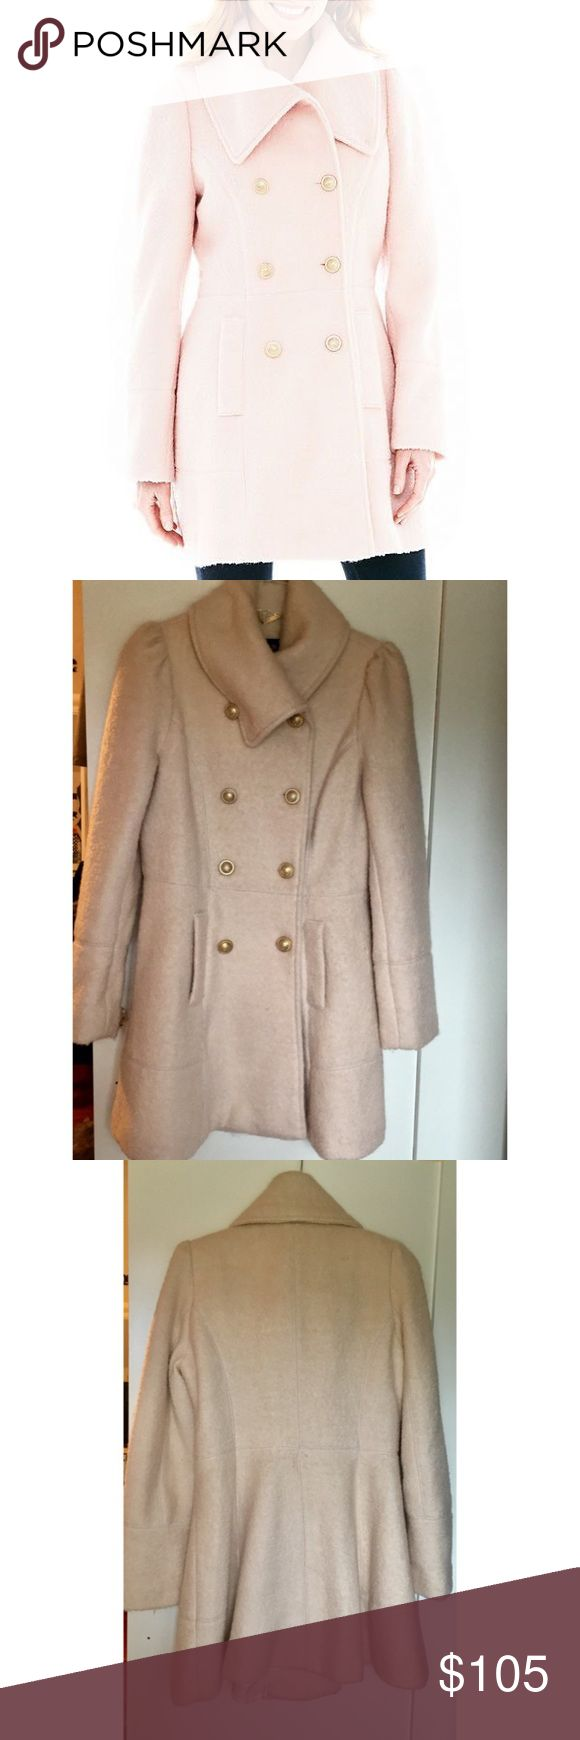 Brand New! Worthington Pale Pink Wool Coat This coat is the epitome of feminine and pretty! Its brand new and has never been worn. (Backstory: Its a size small but it fits a 2-4 and I'm more of a 0-2 so it's not the perfect fit for my petite frame 😞) But someone needs to show off this coat!                                                 🔸Double breasted coat w/ elegant gold buttons            🔸Feminine flare design at bottom                                    🔸Never Worn, extra burtons…